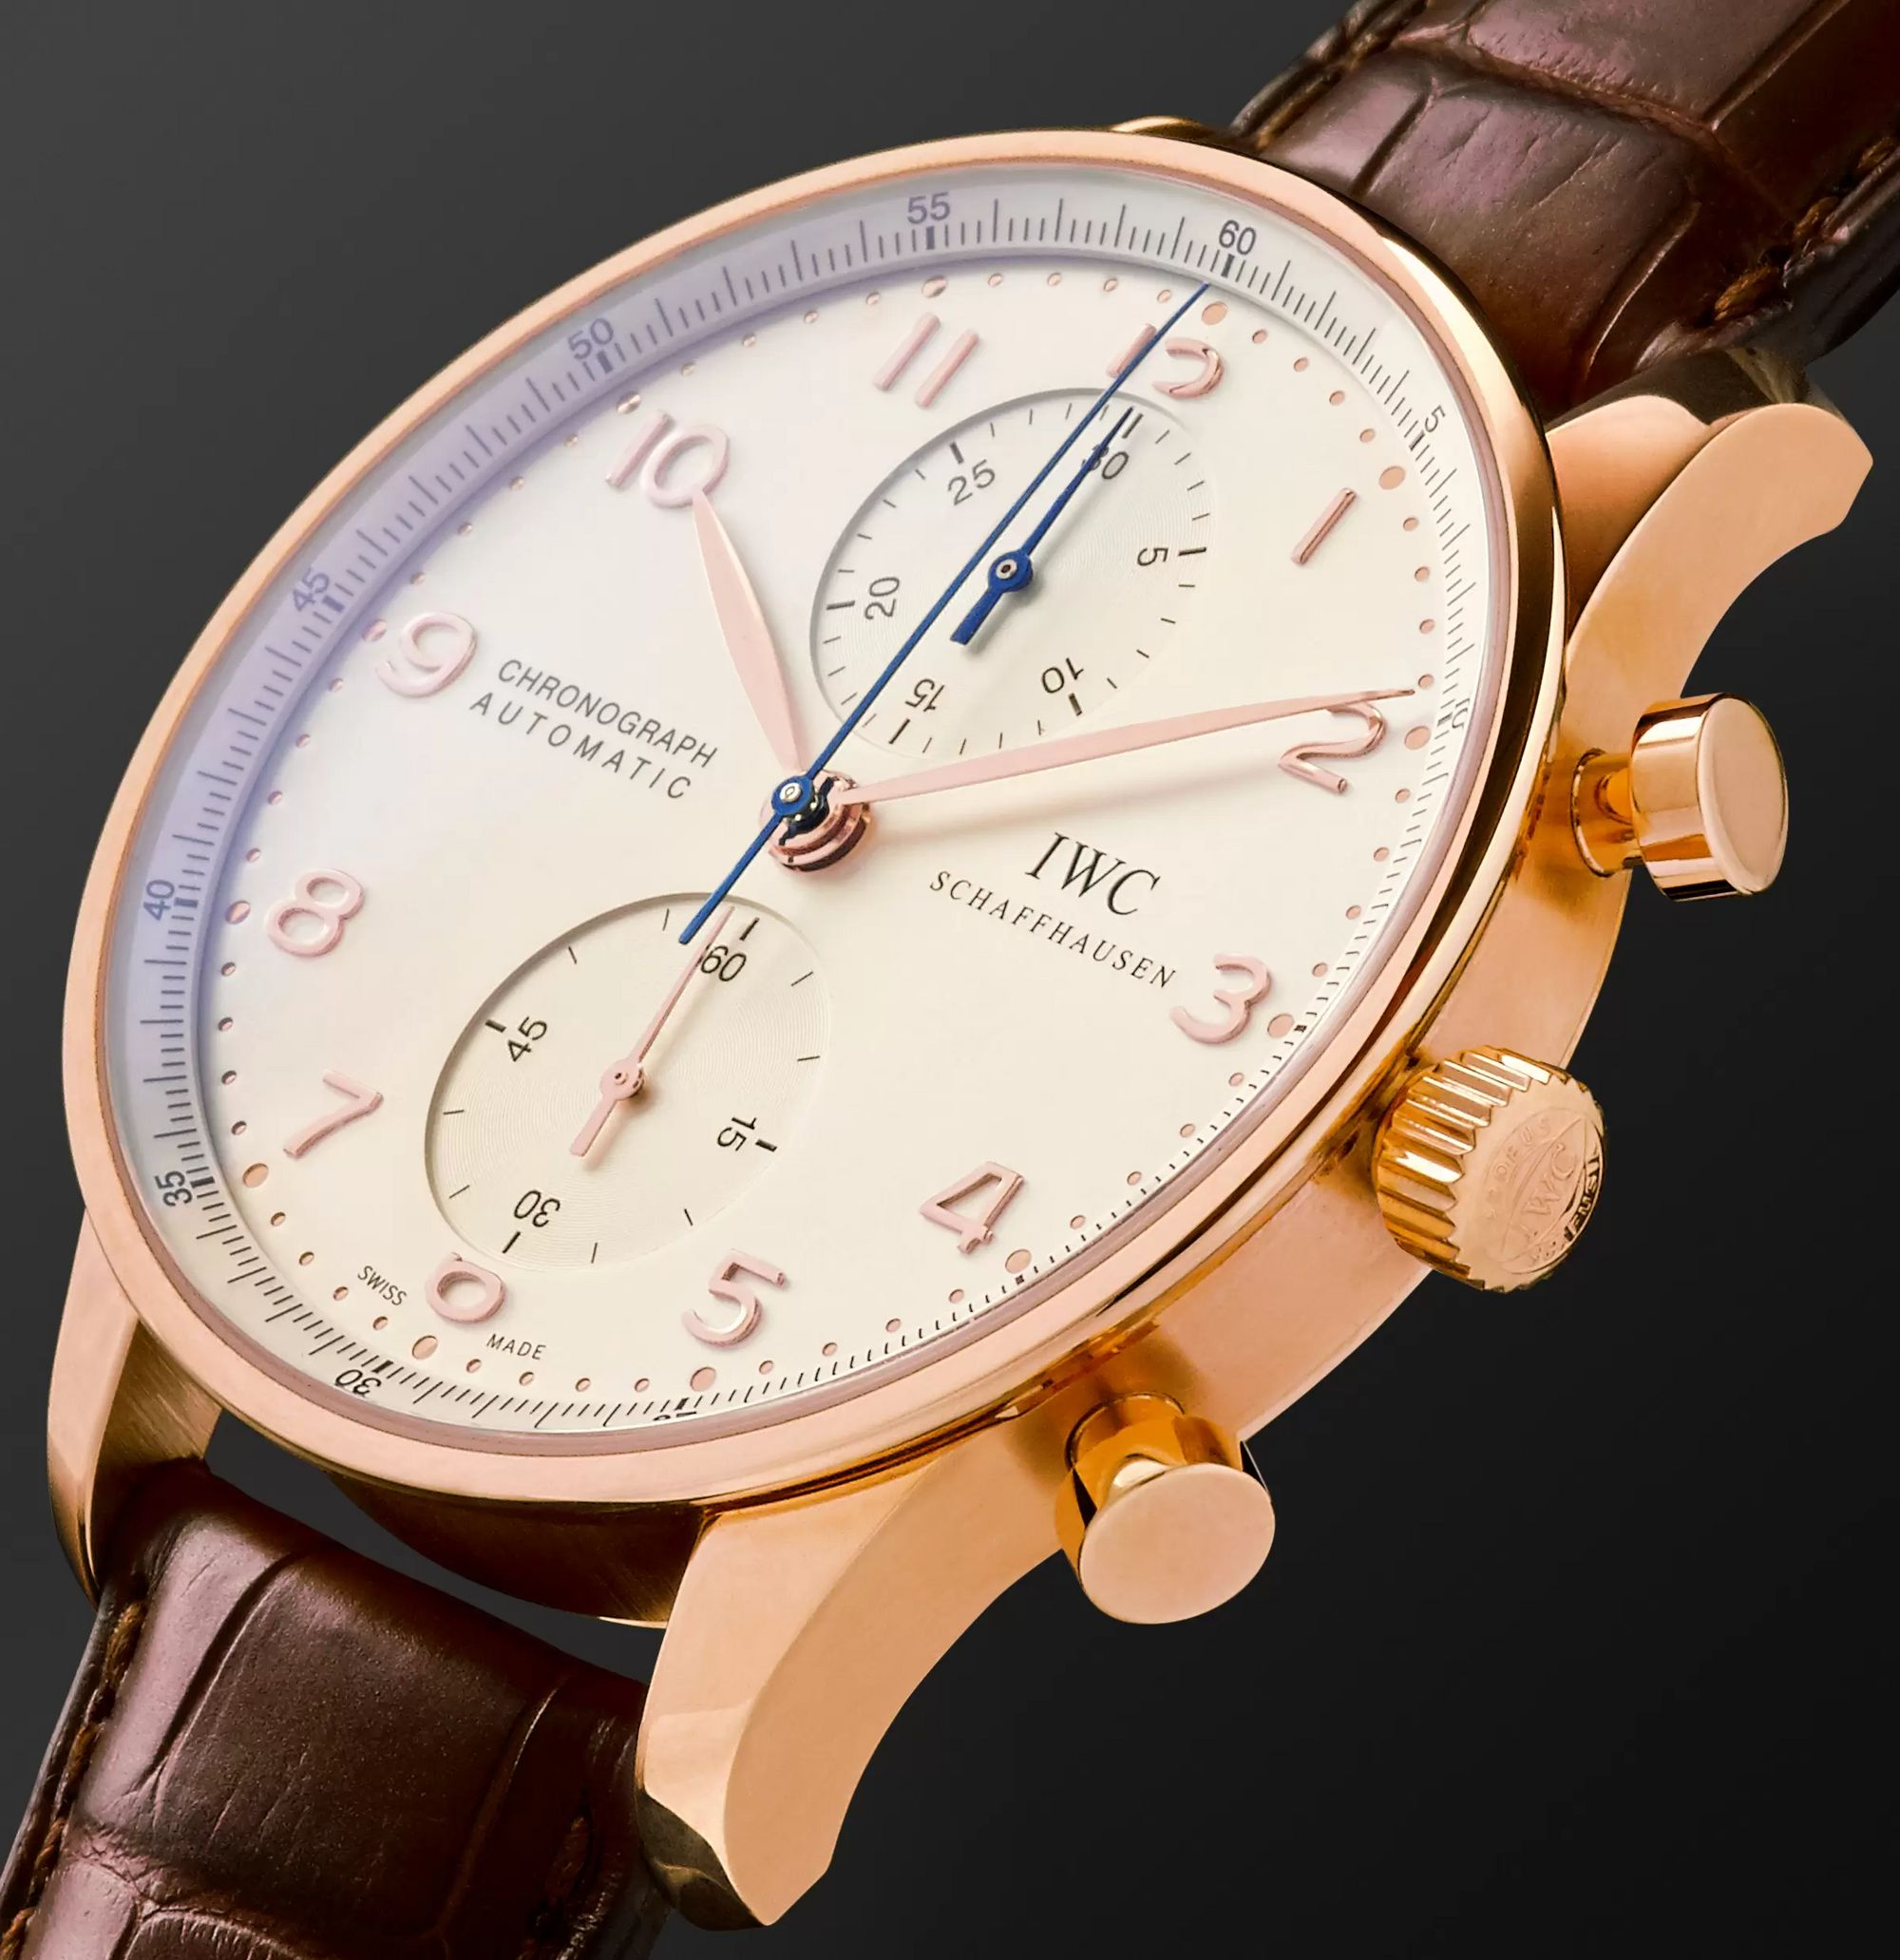 IWC SCHAFFHAUSEN Portugieser Automatic Chronograph 40.9mm 18-Karat Red Gold and Alligator Watch, Ref. No. IW371480